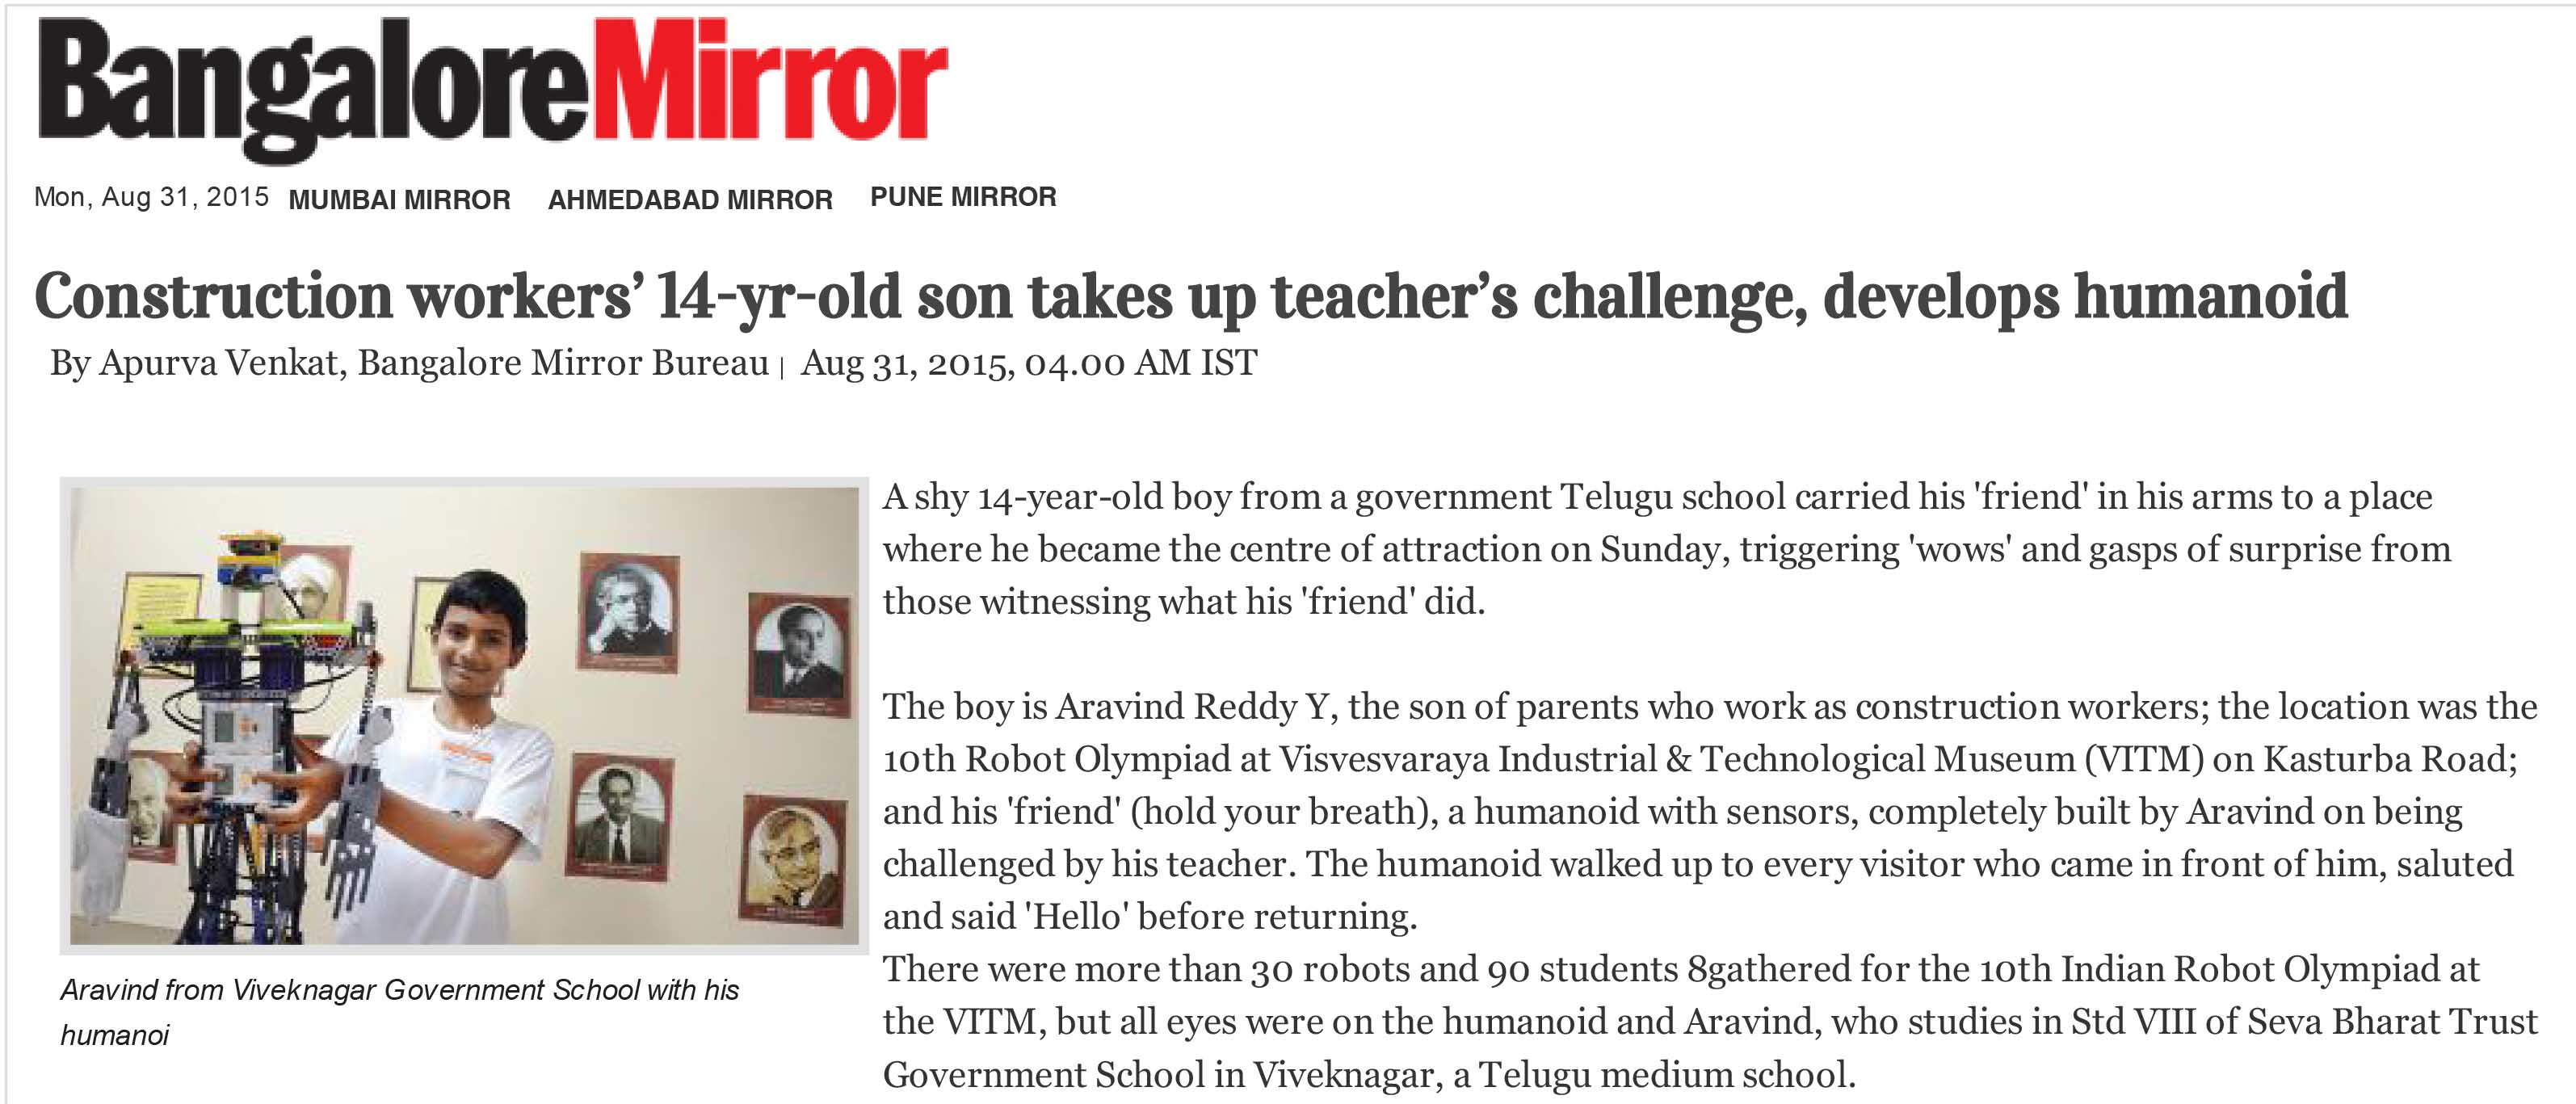 Construction workers' 14-yr-old son takes up teacher's challenge, develops humanoid